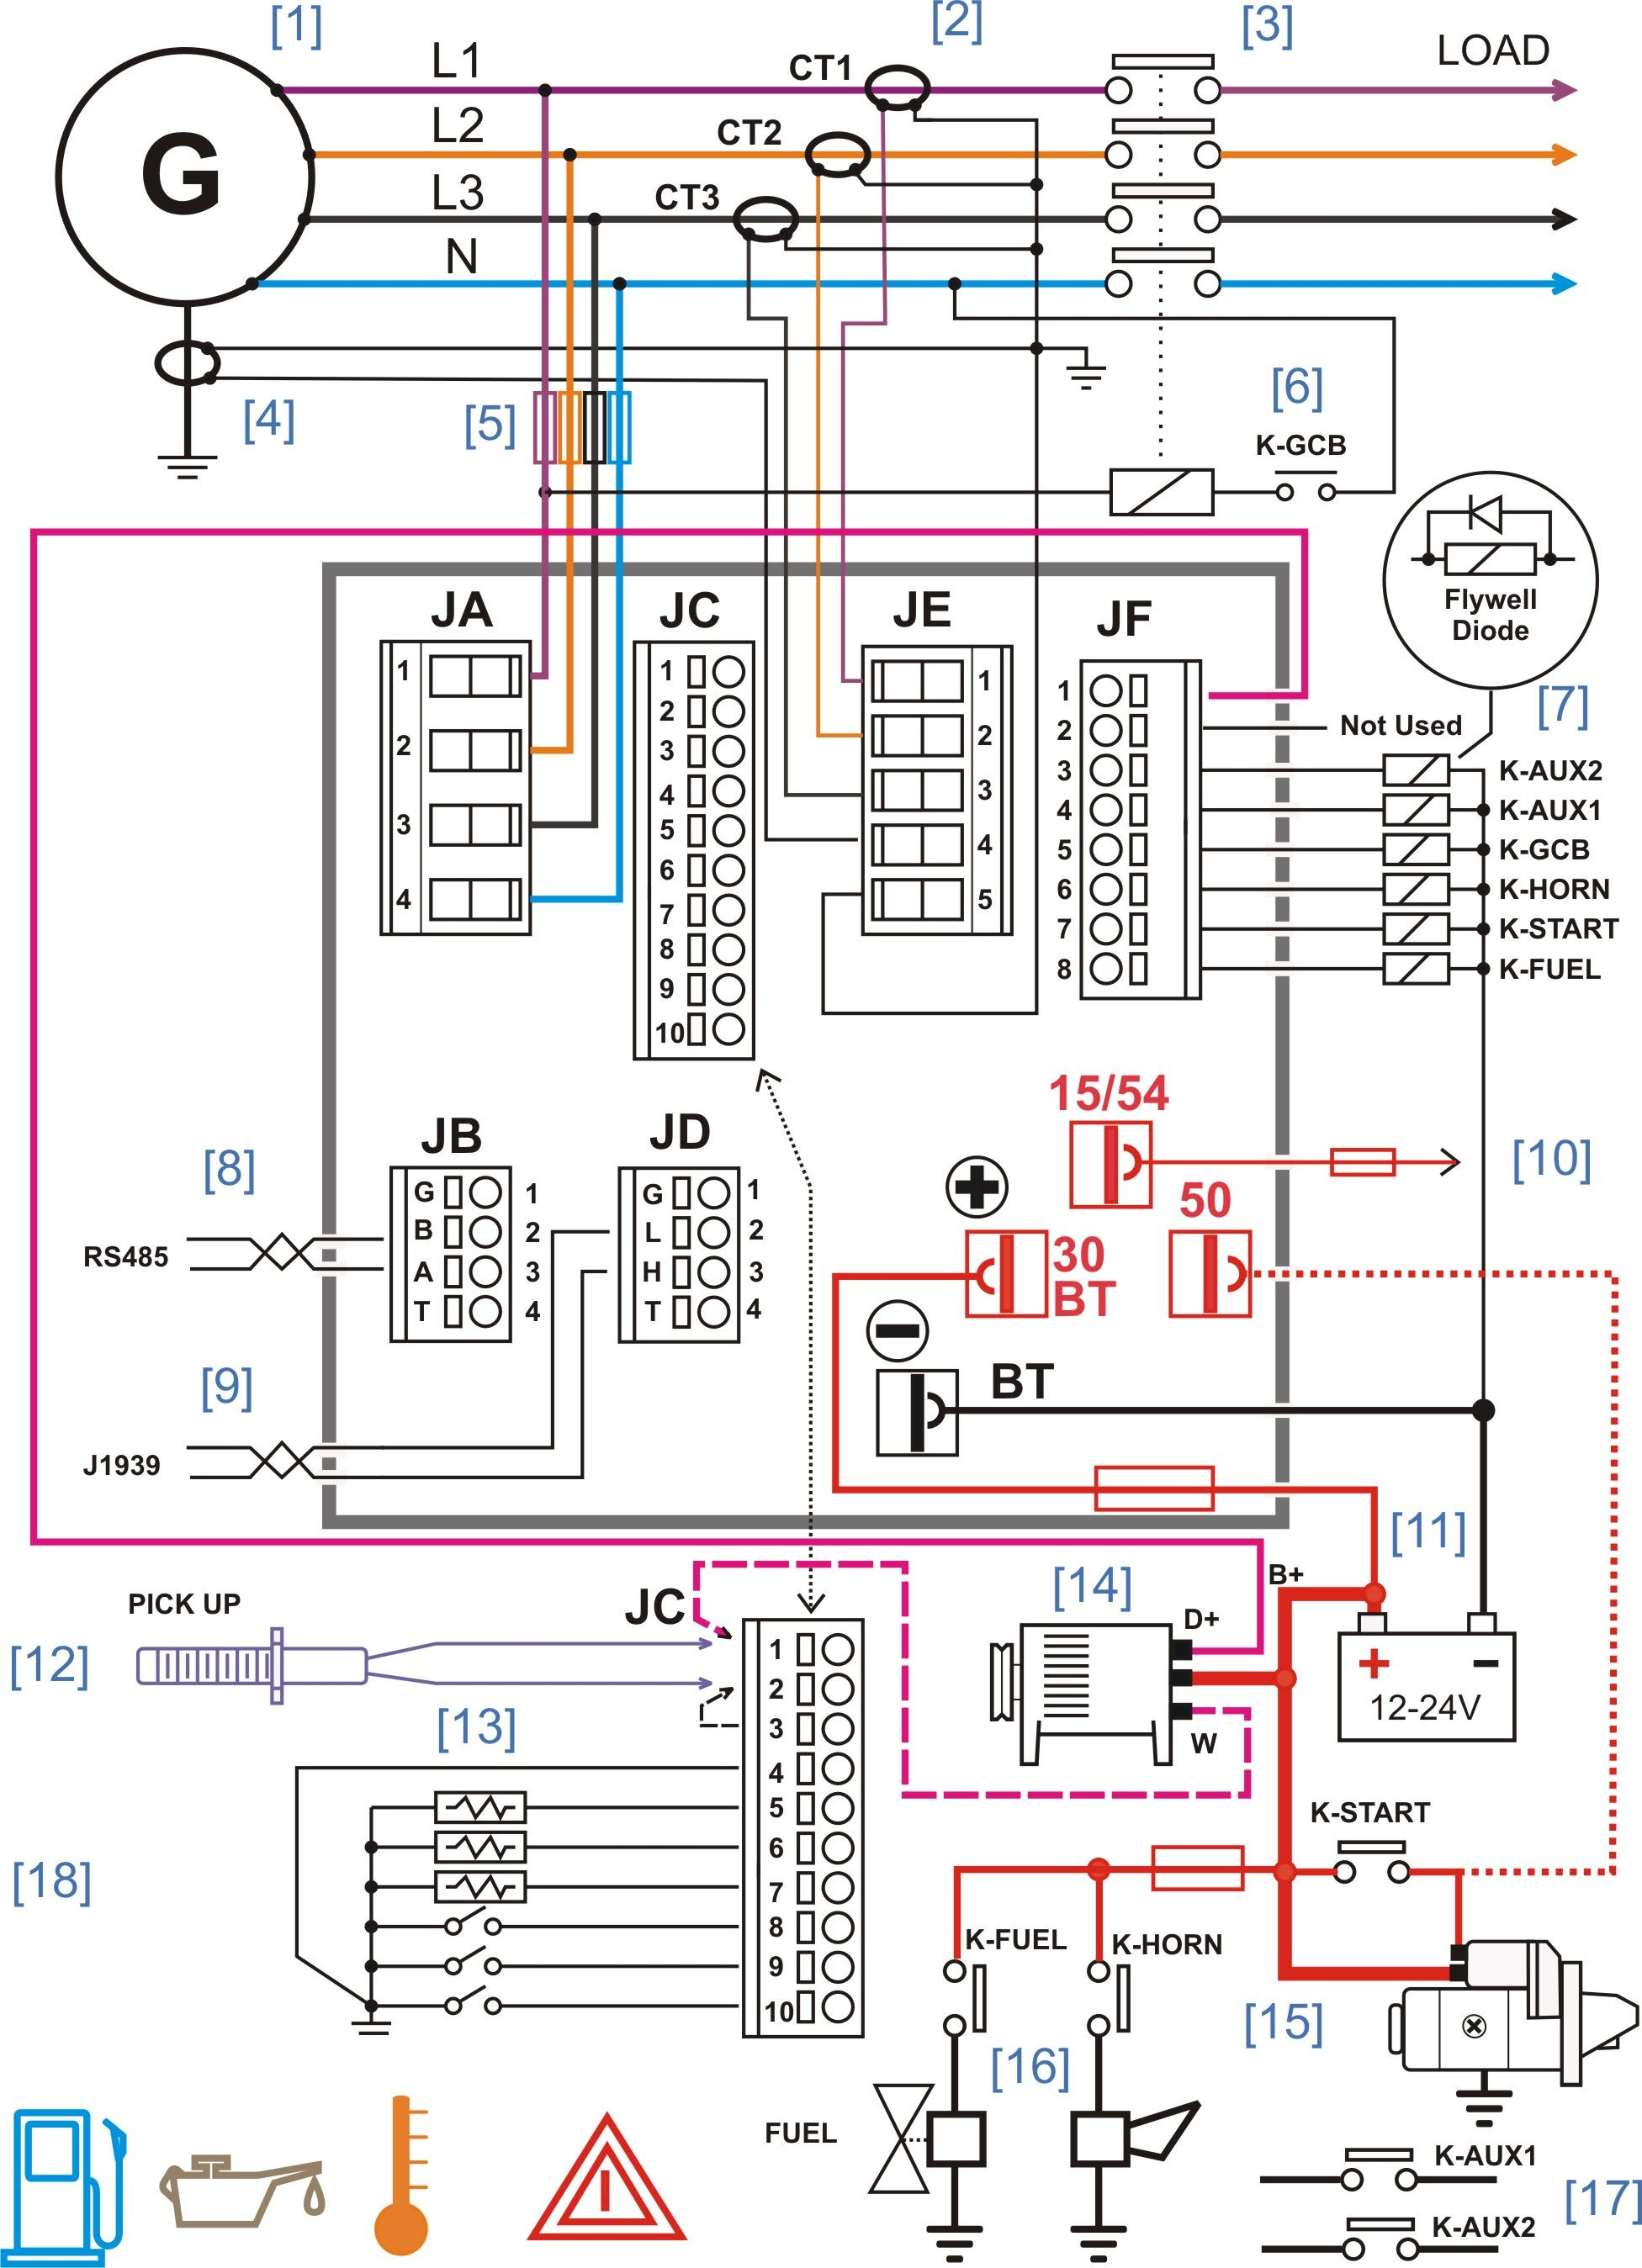 Large Portable Junction Box Wiring Diagram Car Fuse With Switch Diesel Generator Control Panel Generators Rh Pinterest Com Light Adding